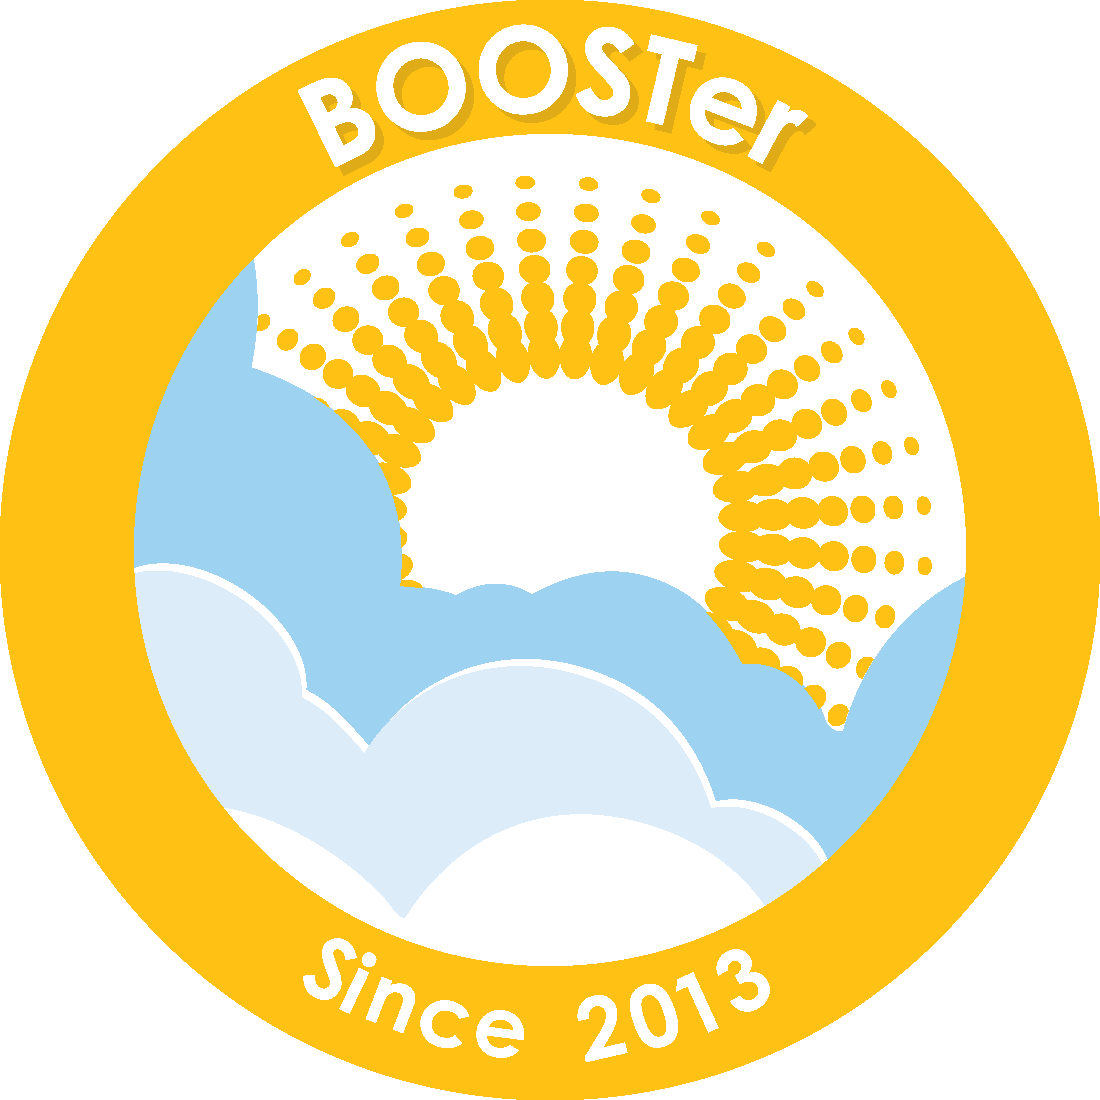 2013 BOOSTer Since badge